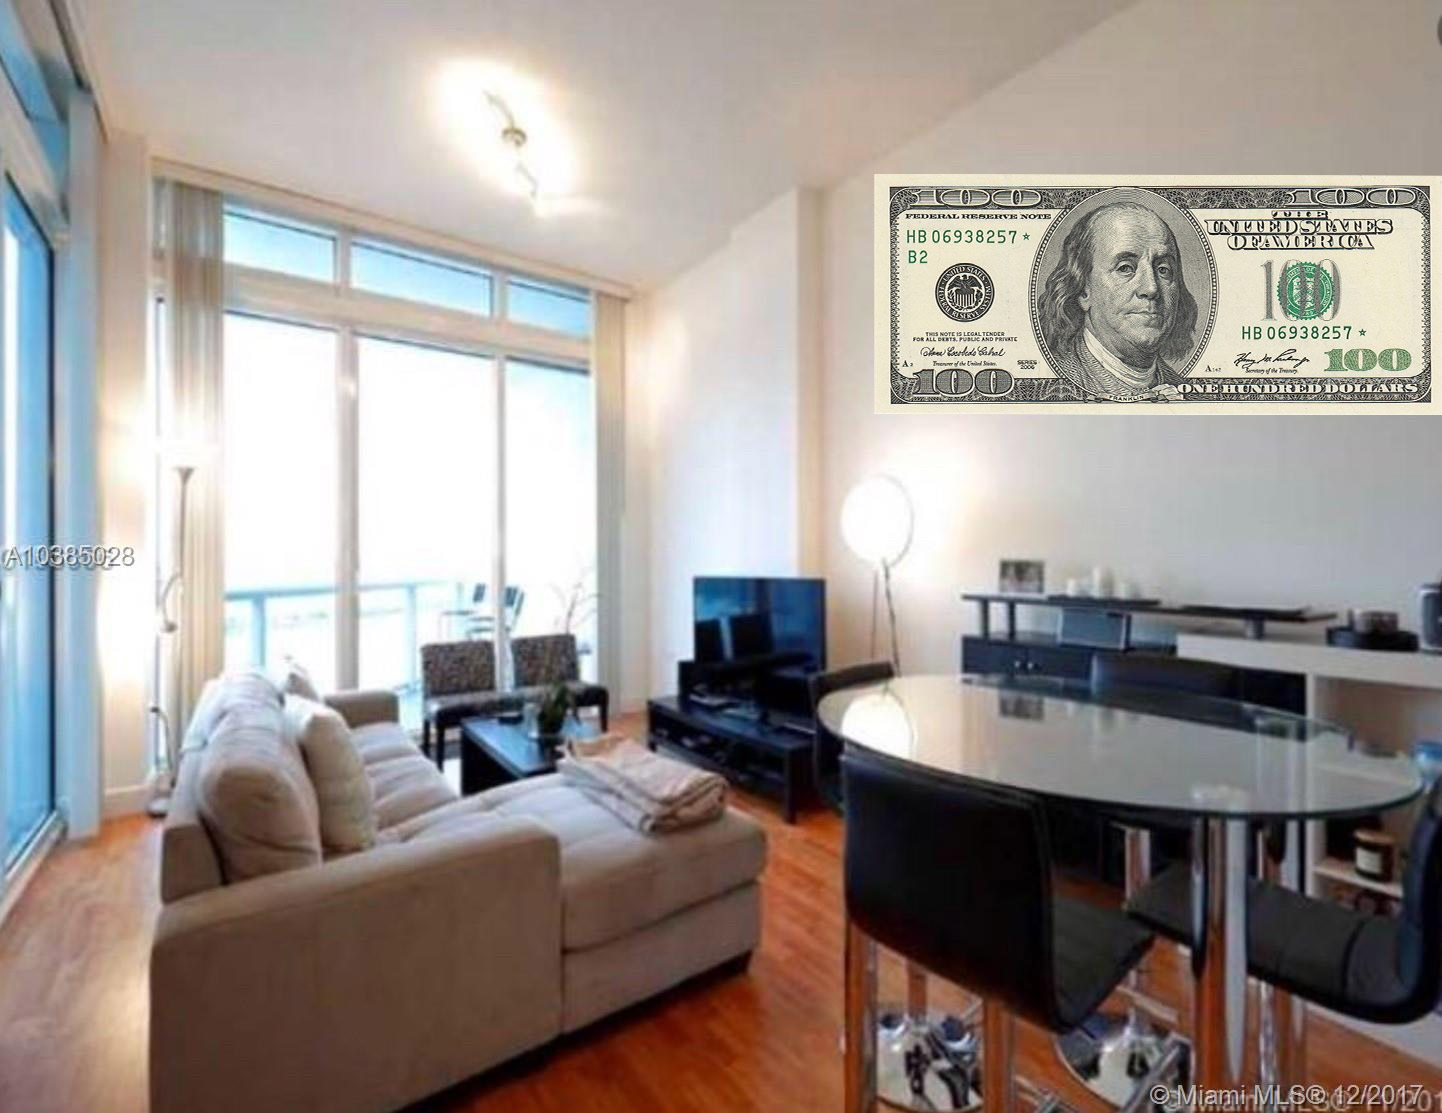 Bitcoin denominated penthouse switches to U.S. Dollars